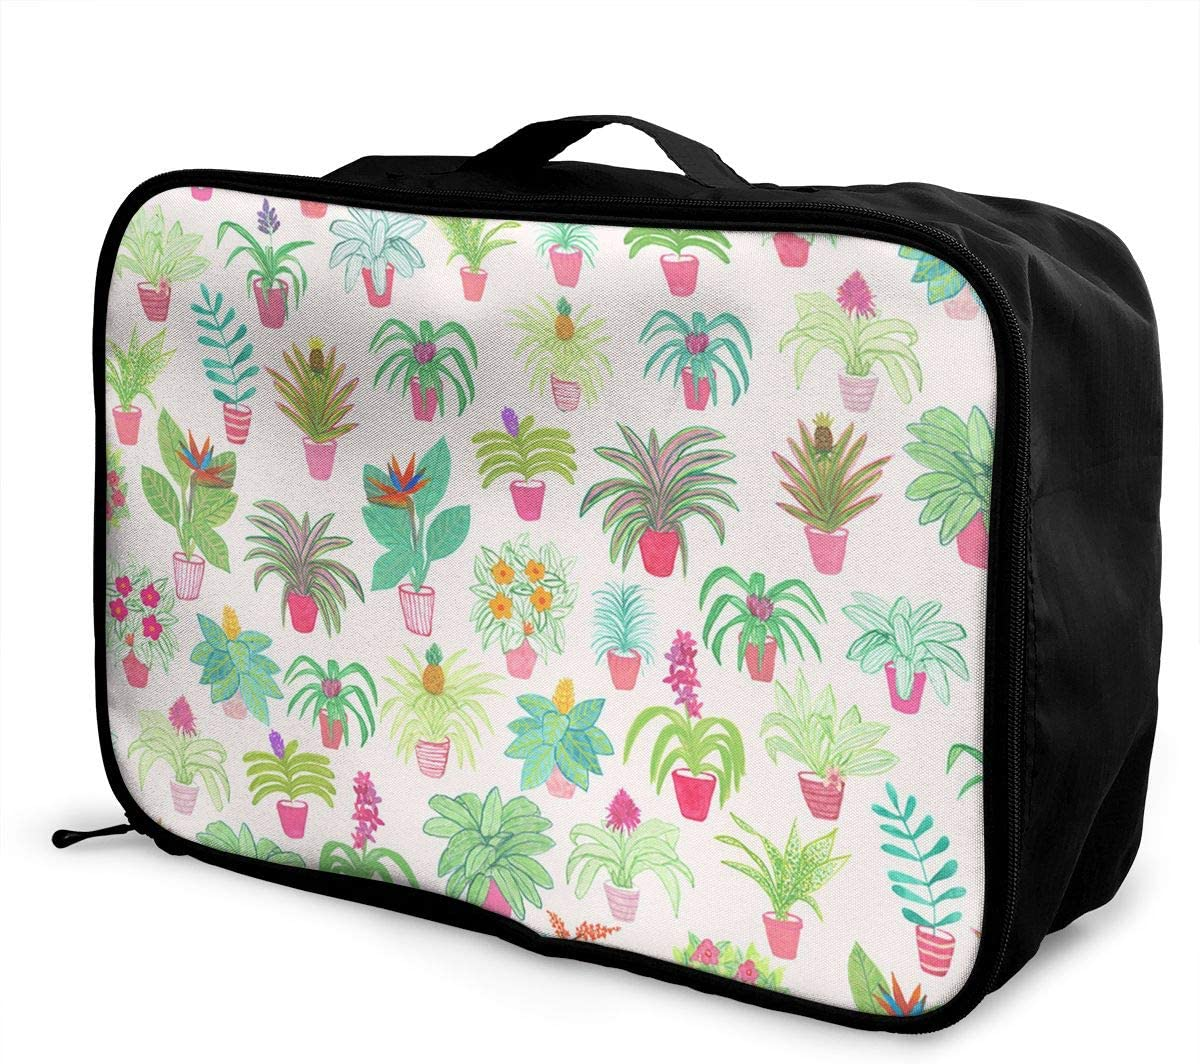 Pot Travel Carry-on Luggage Weekender Bag Overnight Tote Flight Duffel In Trolley Handle